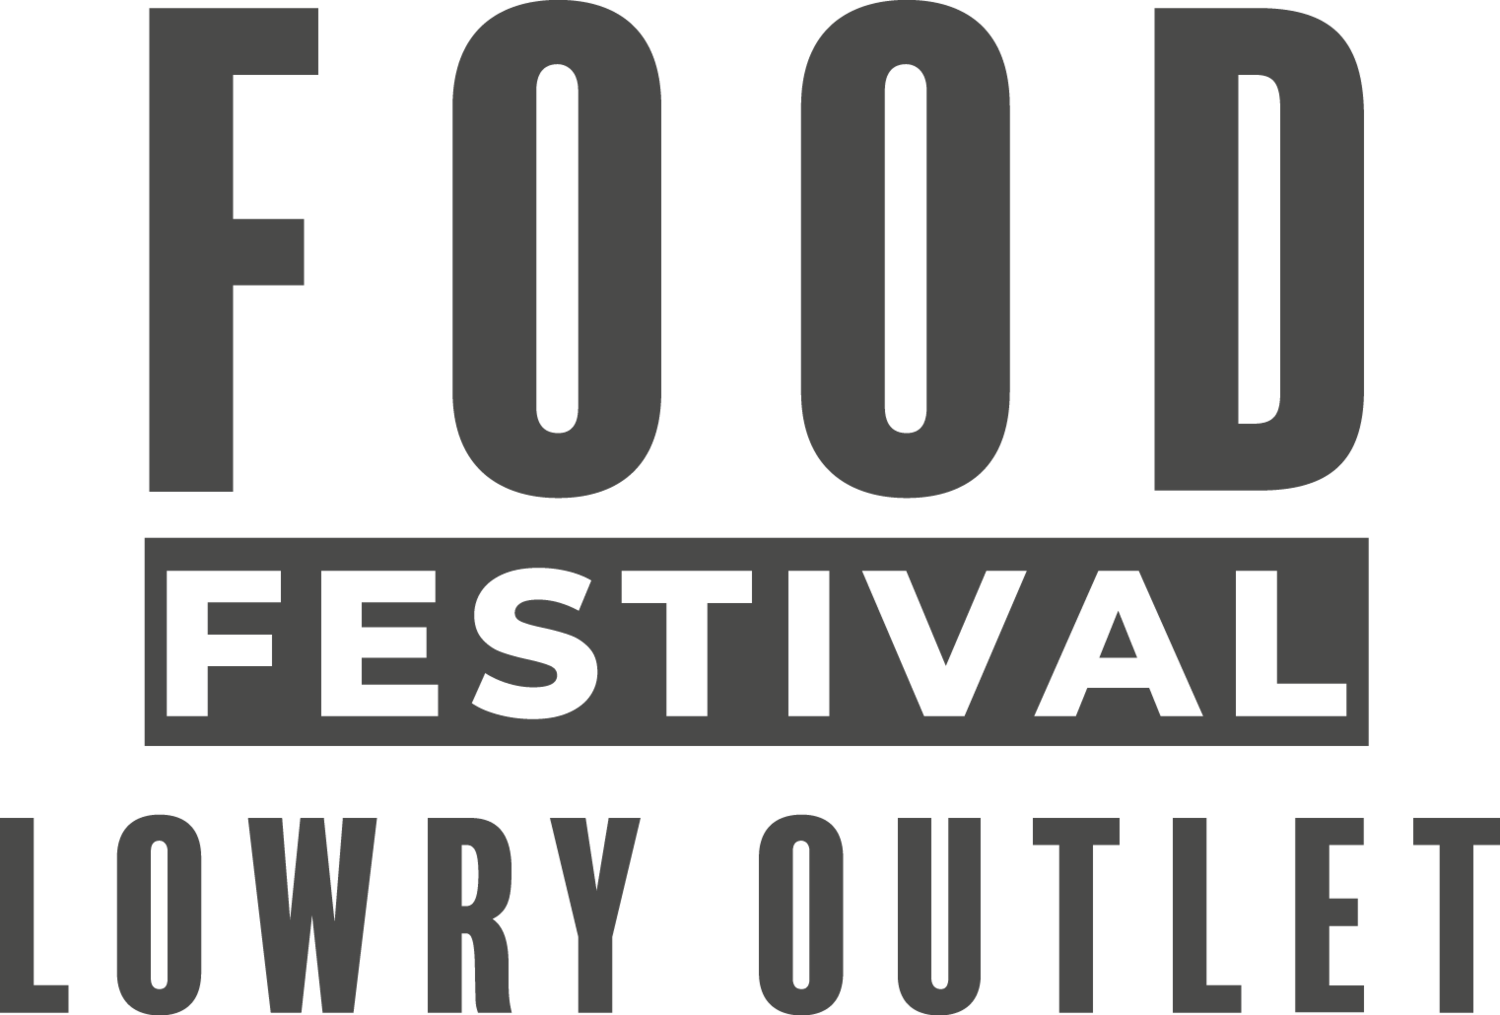 Food Festival - Lowry Outlet - Manchester